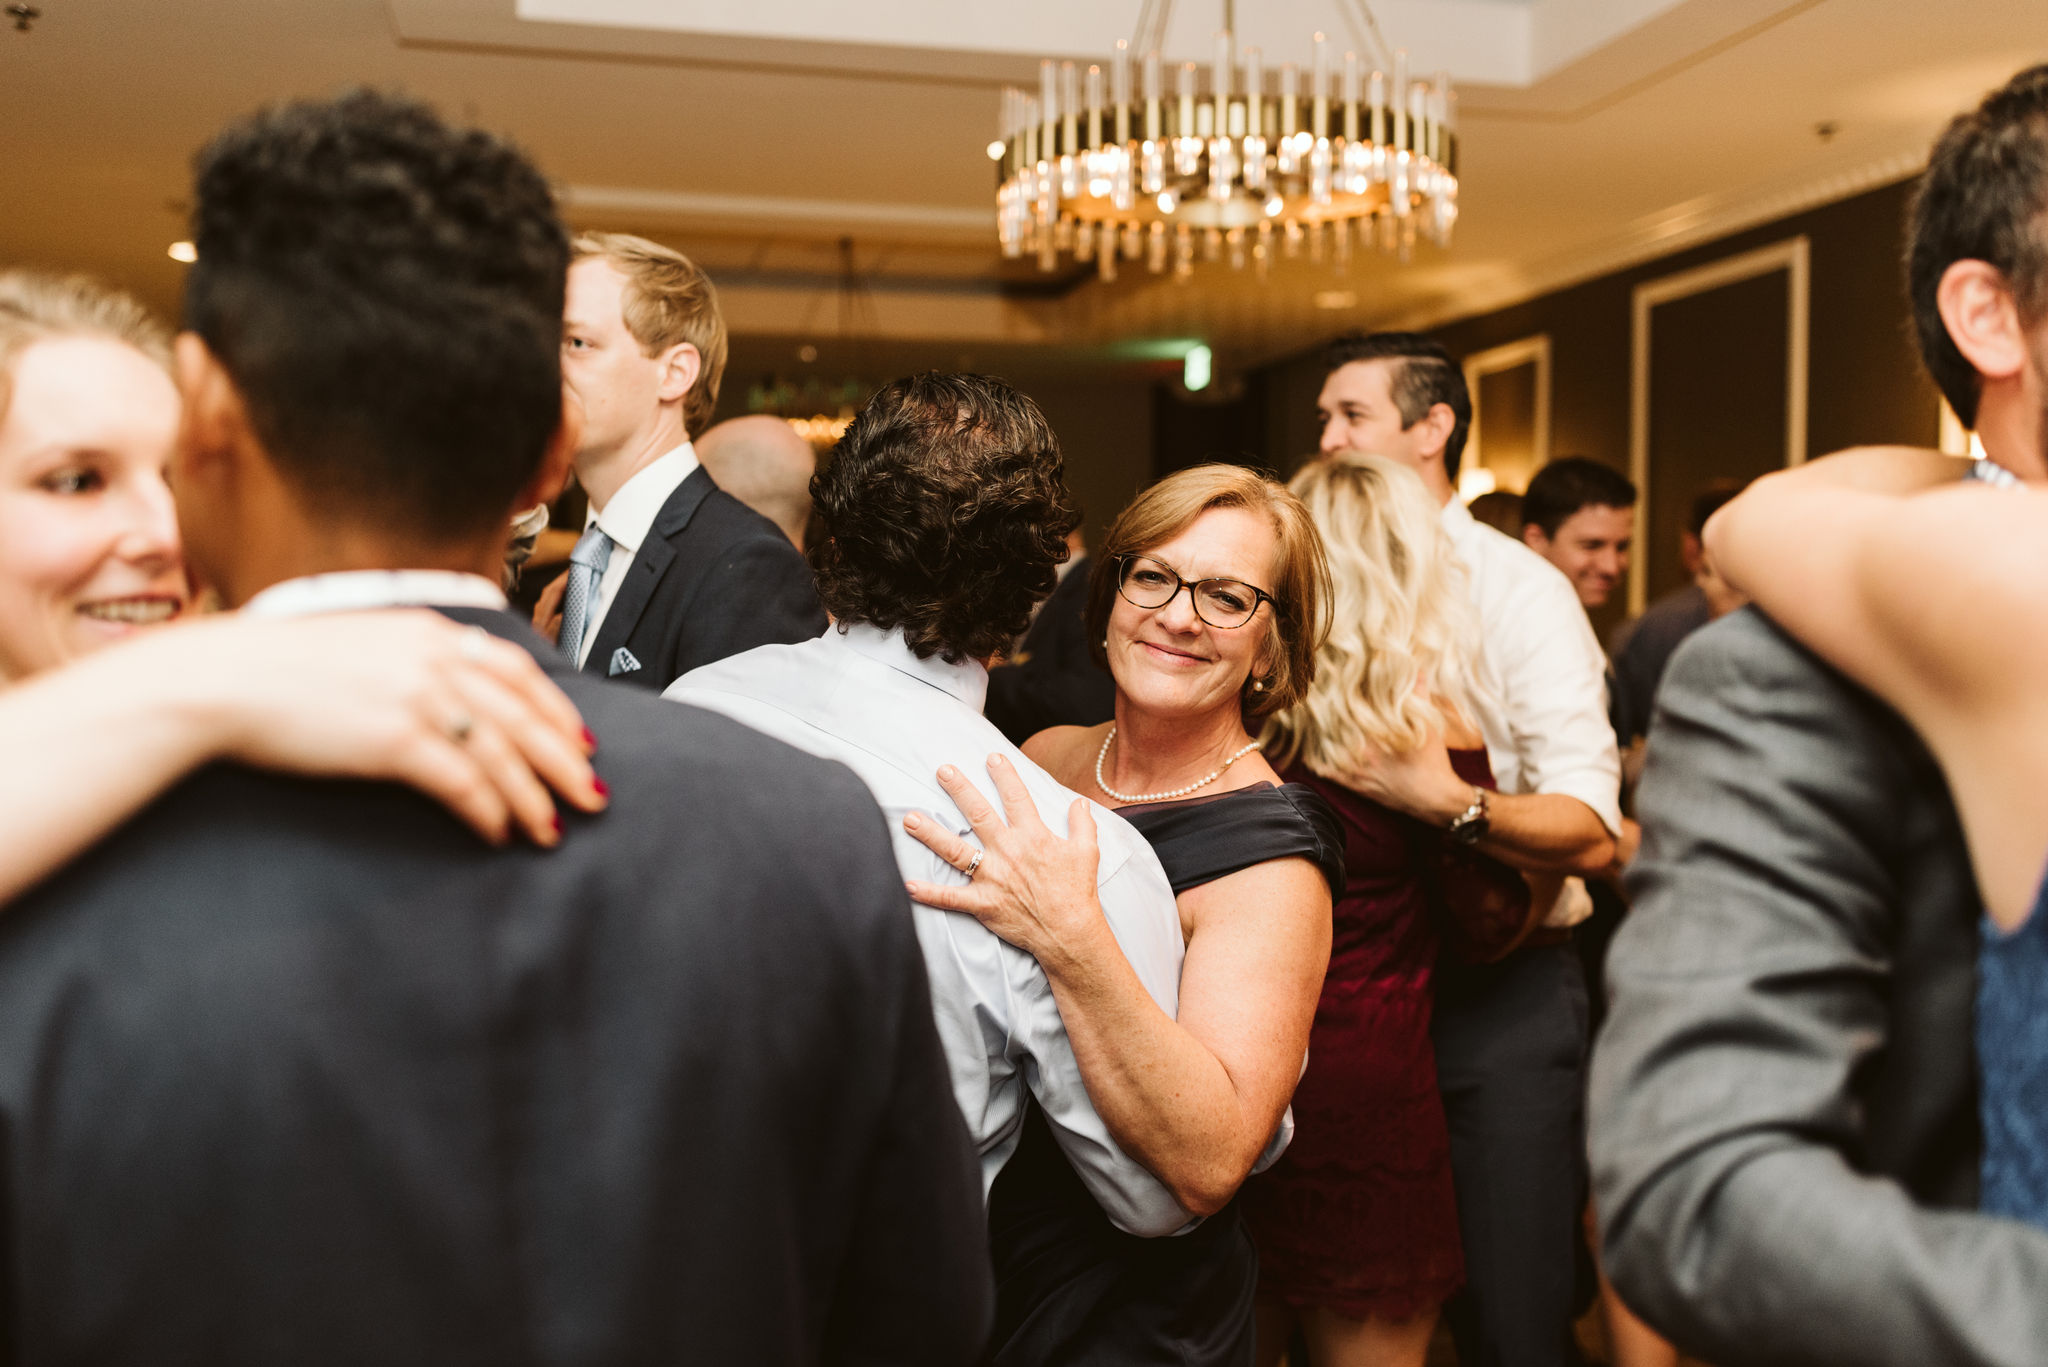 Phoenix Maryland, Baltimore Wedding Photographer, Eagle's Nest Country Club, Classic, Romantic, Wedding Guests Smiling and Dancing at Reception